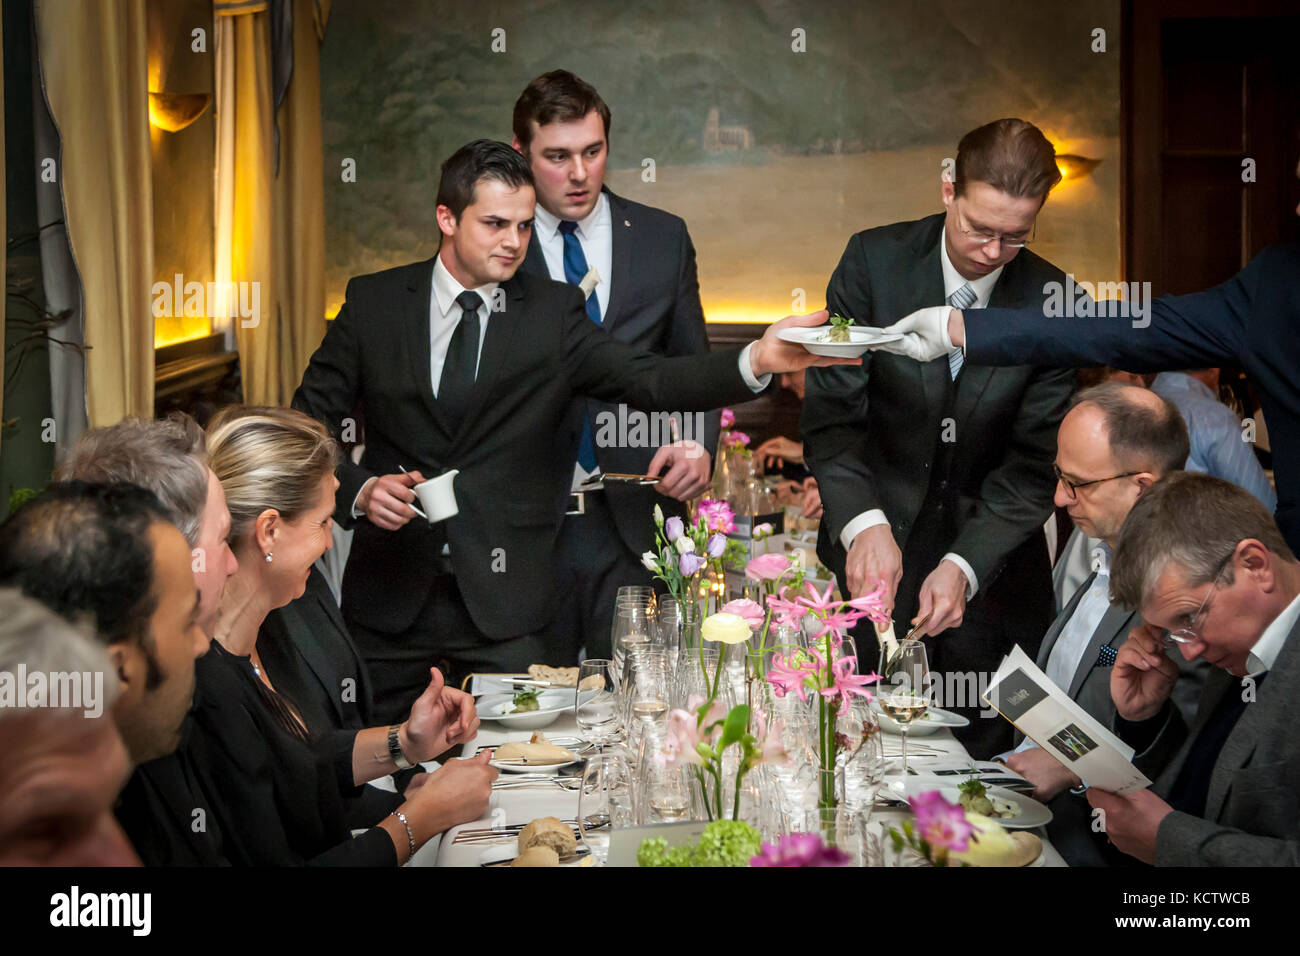 Waiters Serving In A Restaurant Of Gourmet Festival